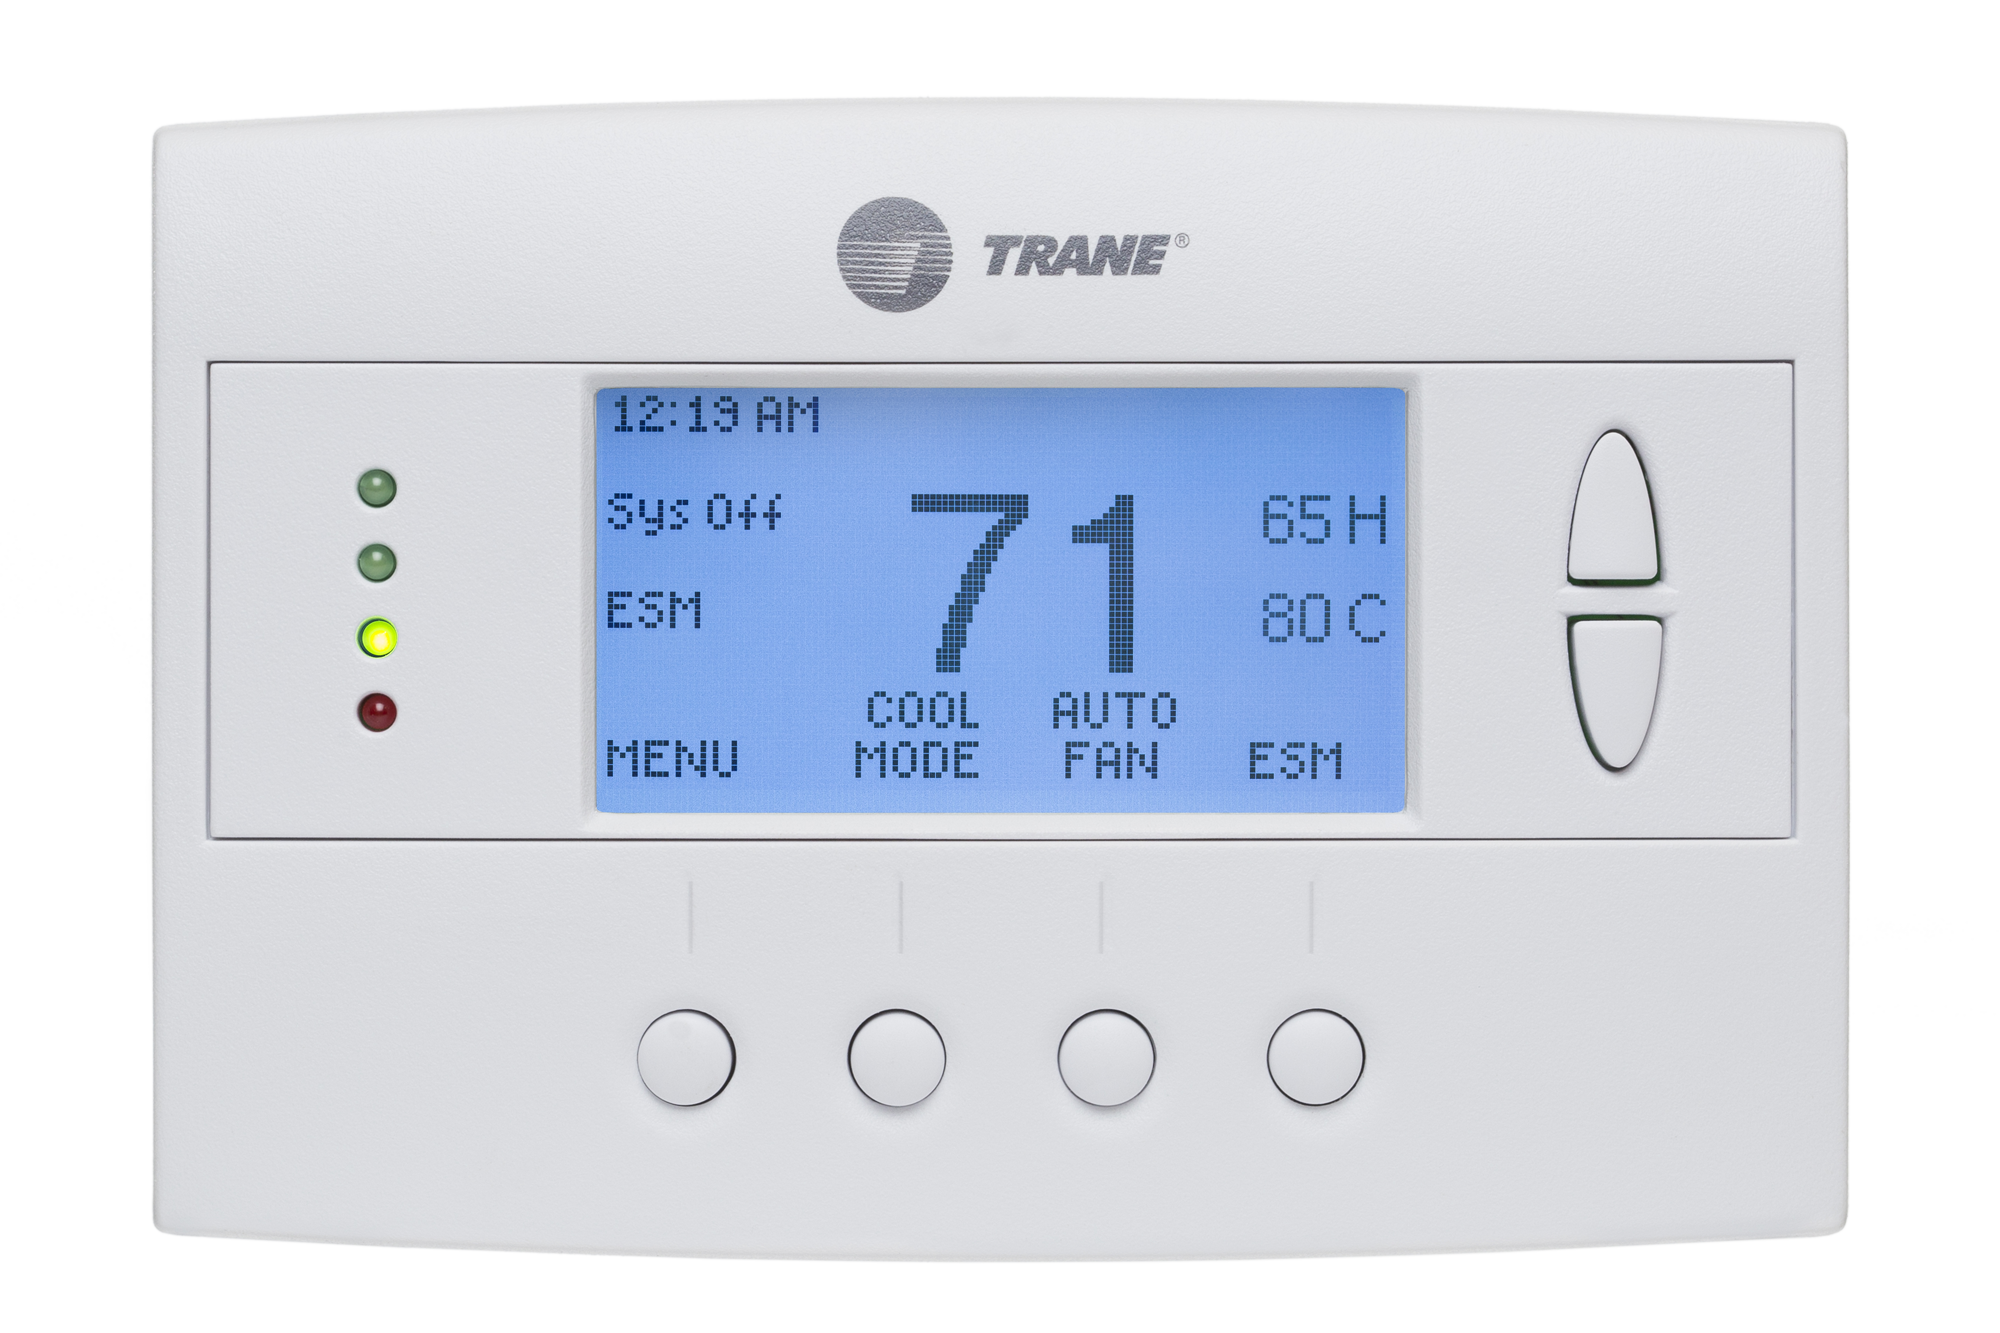 Pro T705 Thermostat Installation Manual Trane Wiring Diagram Also How To Replace A Car